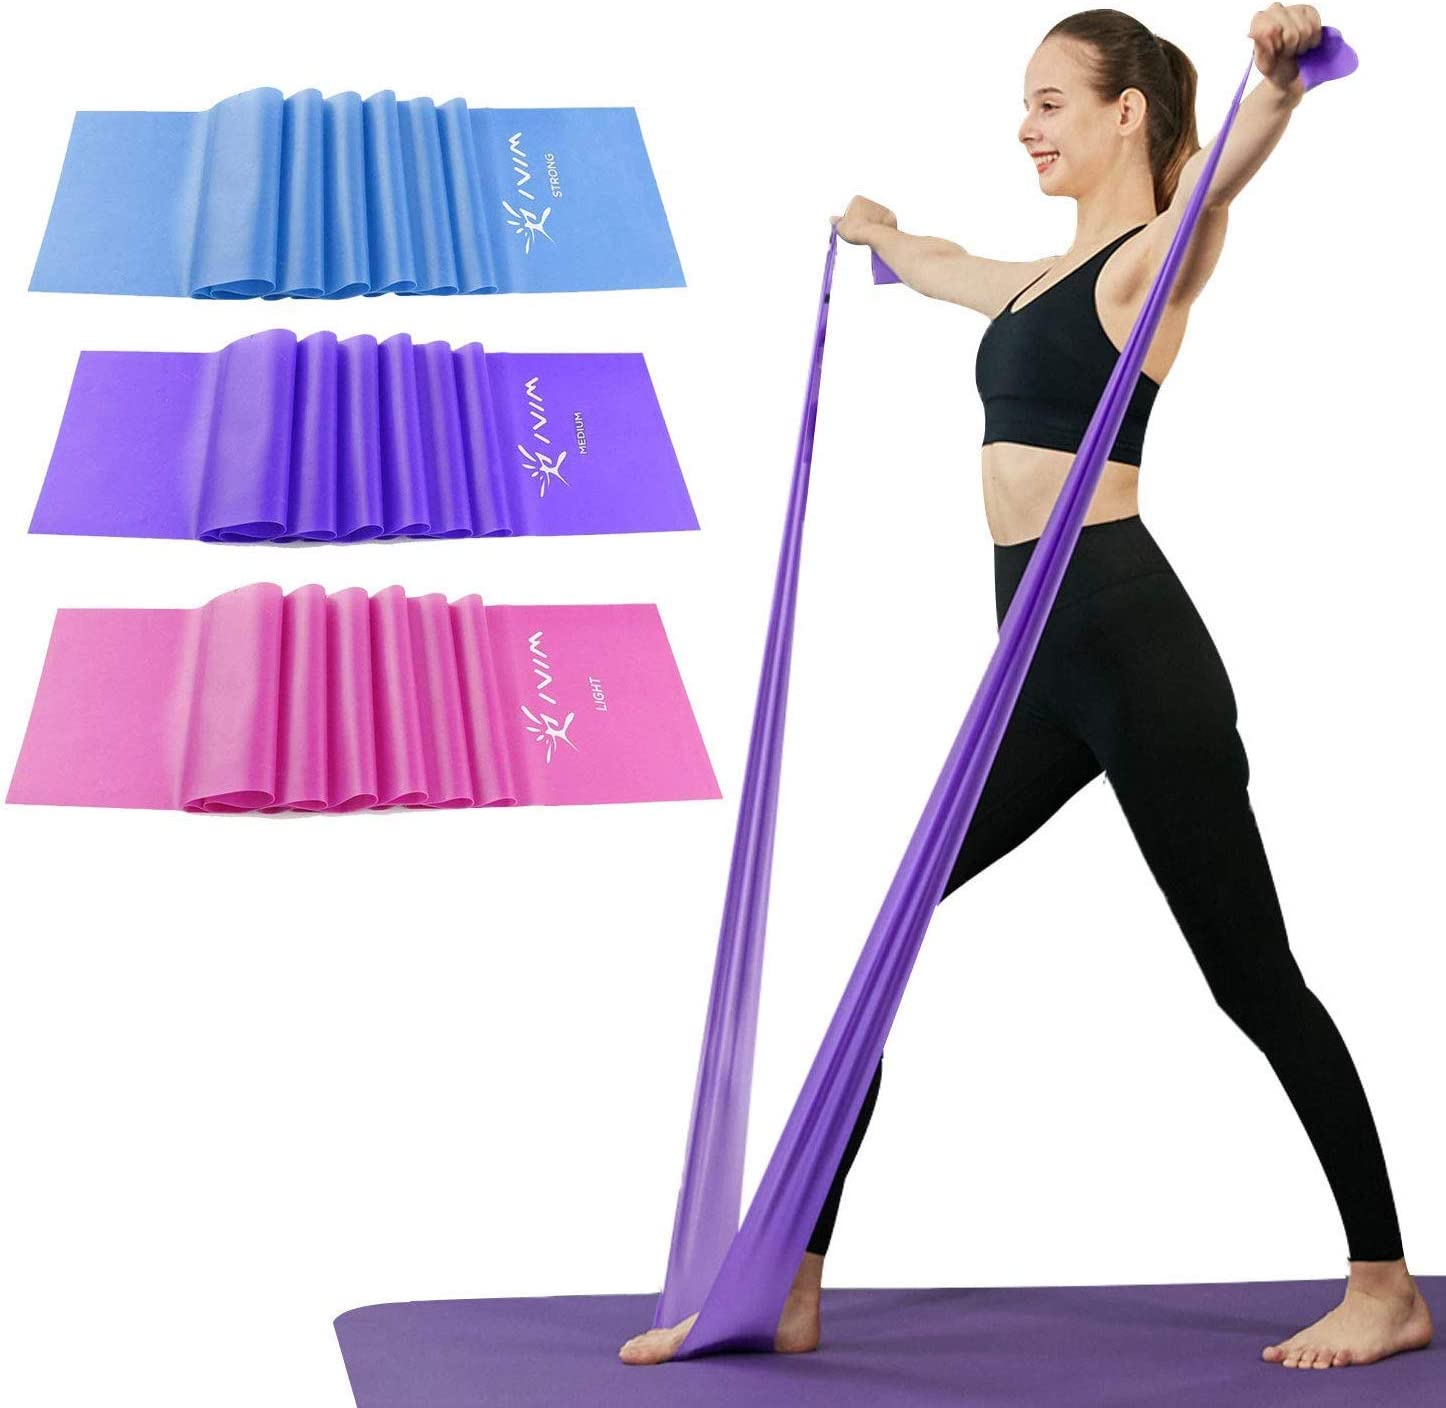 Amazon Com Therapy Flat Resistance Bands Set Latex Free Flat Exercise Stretch Bands For Stretching Flexibility Pilates Yoga Ballet Gymnastics And Rehabilitation Pin Purple Blue 3 Packs 5 9ft Long Sports Outdoors